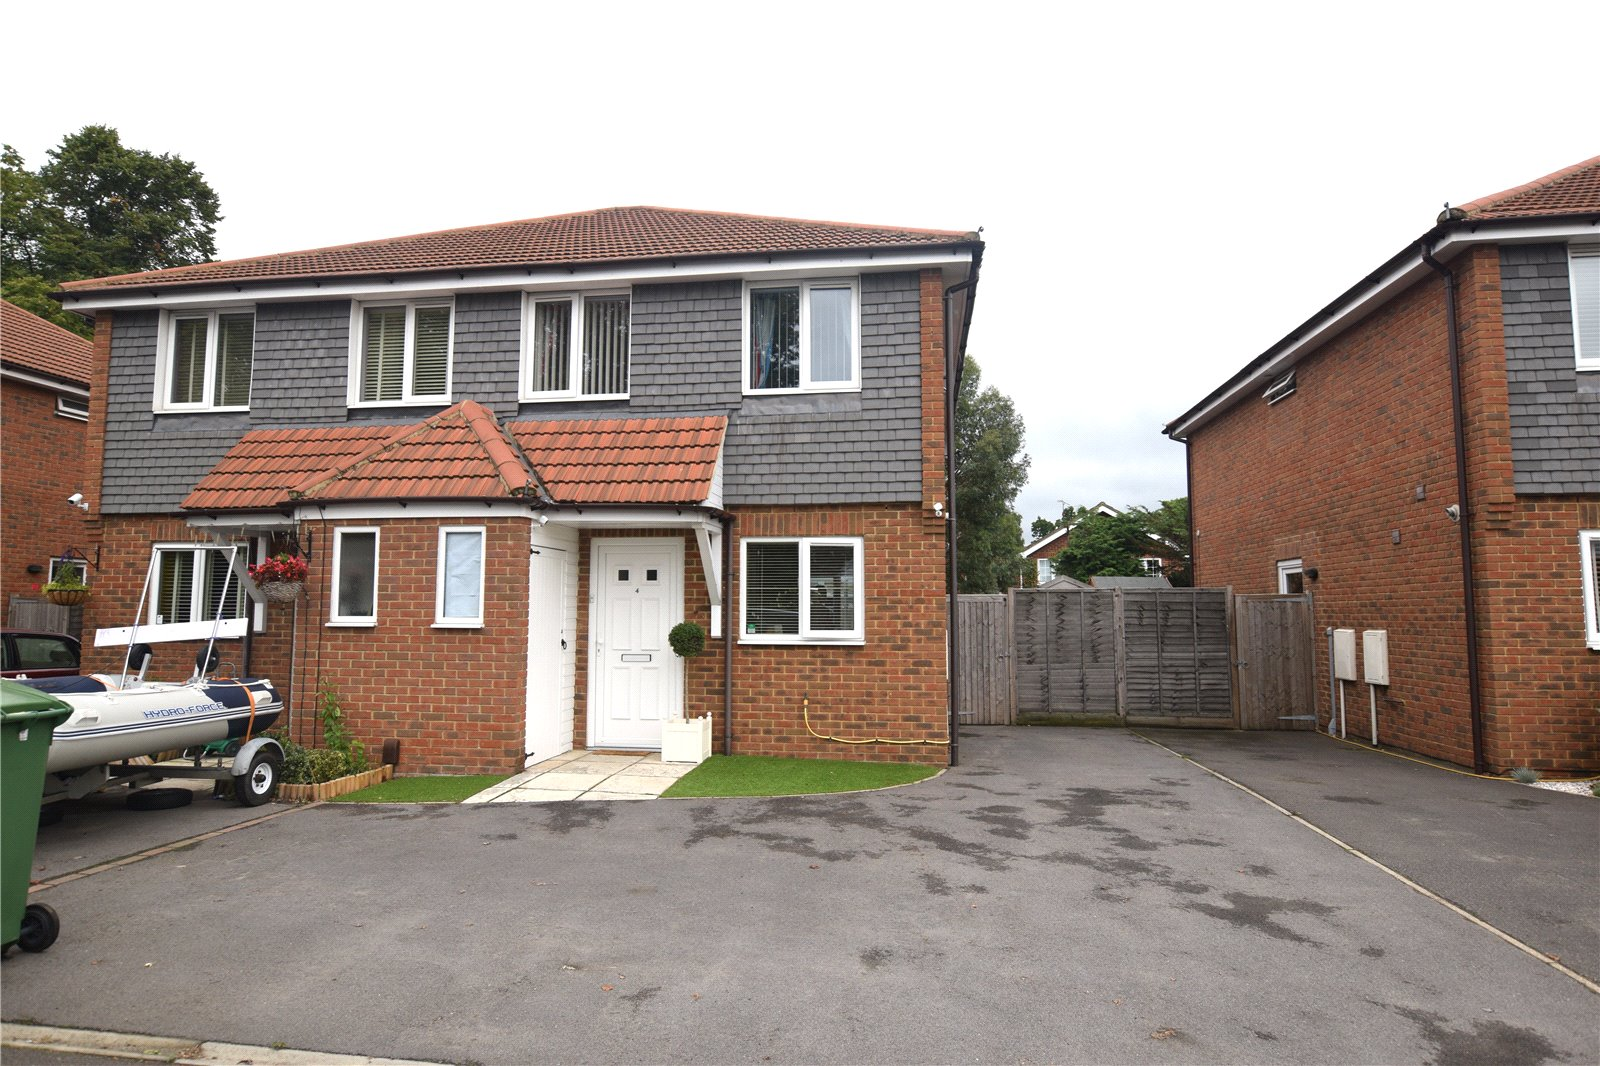 3 Bedrooms Semi Detached House for sale in Fox Villas, Hawley Road, Blackwater, Camberley, GU17